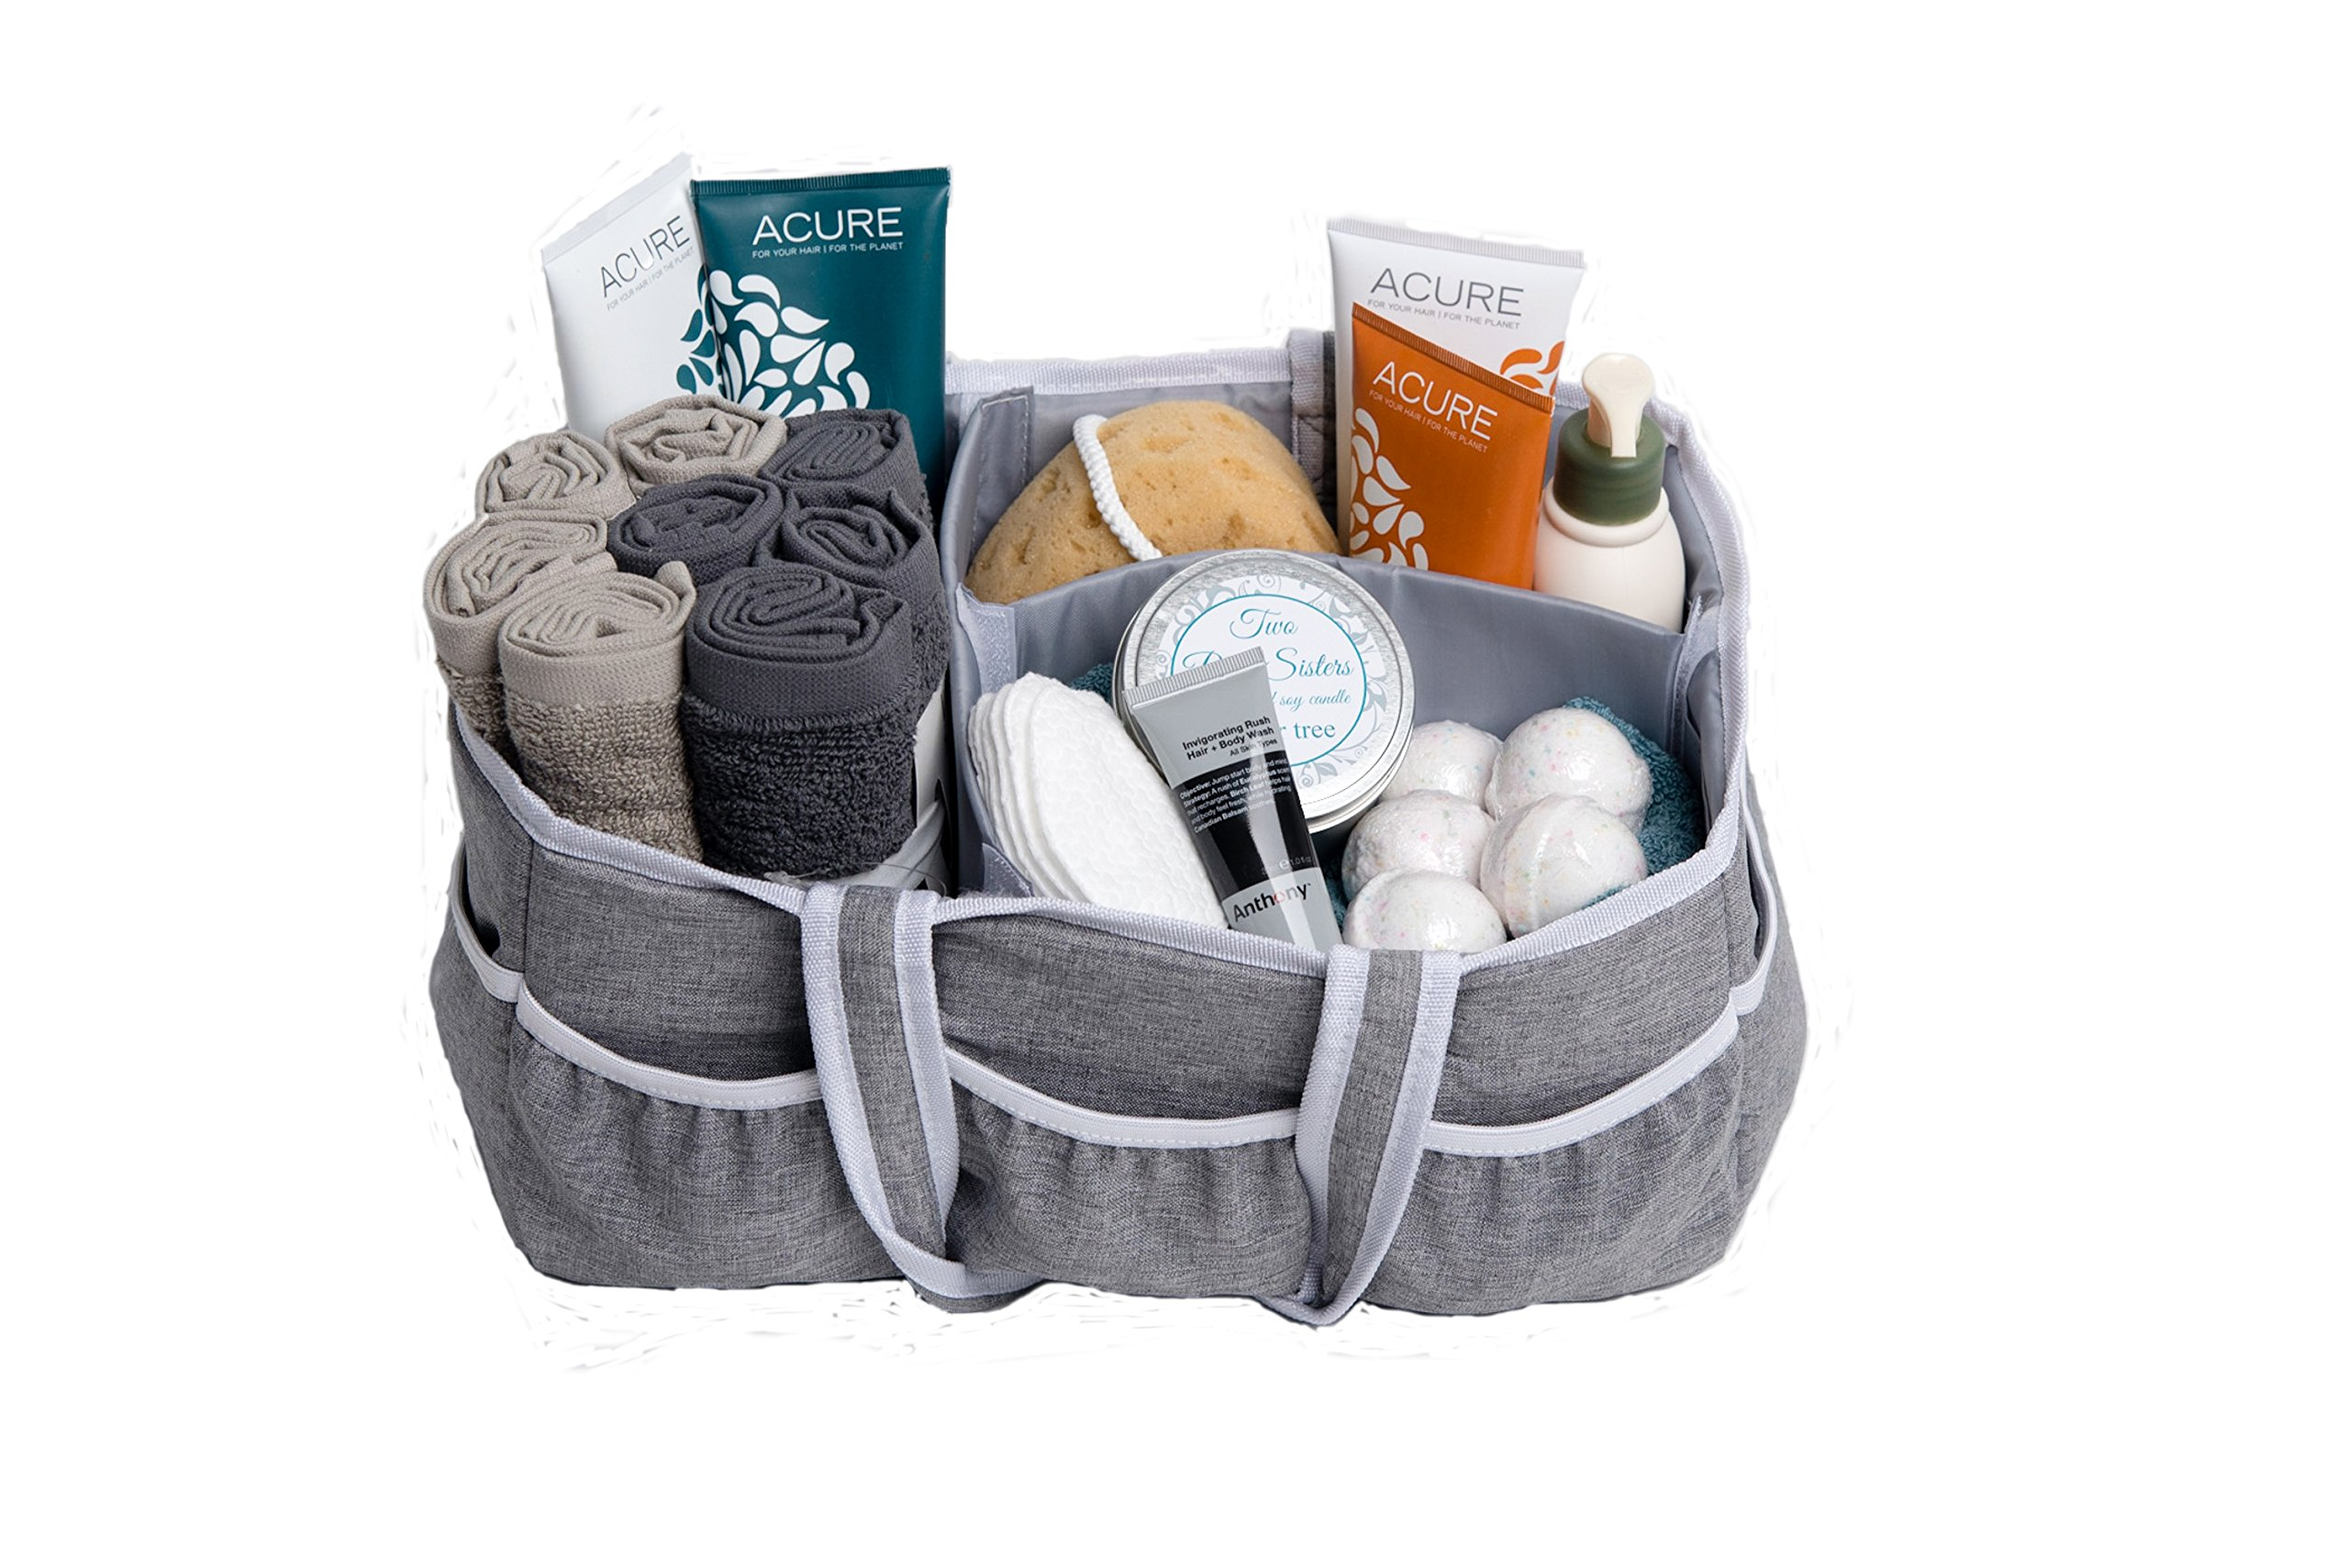 Wallaby Diaper Caddy Storage Bin - Organizer for Diapers, Wipes, Baby Bottles and More. Great for Home, Car, Travel or a Baby Shower Gift. by Bed Buddy (Image #9)